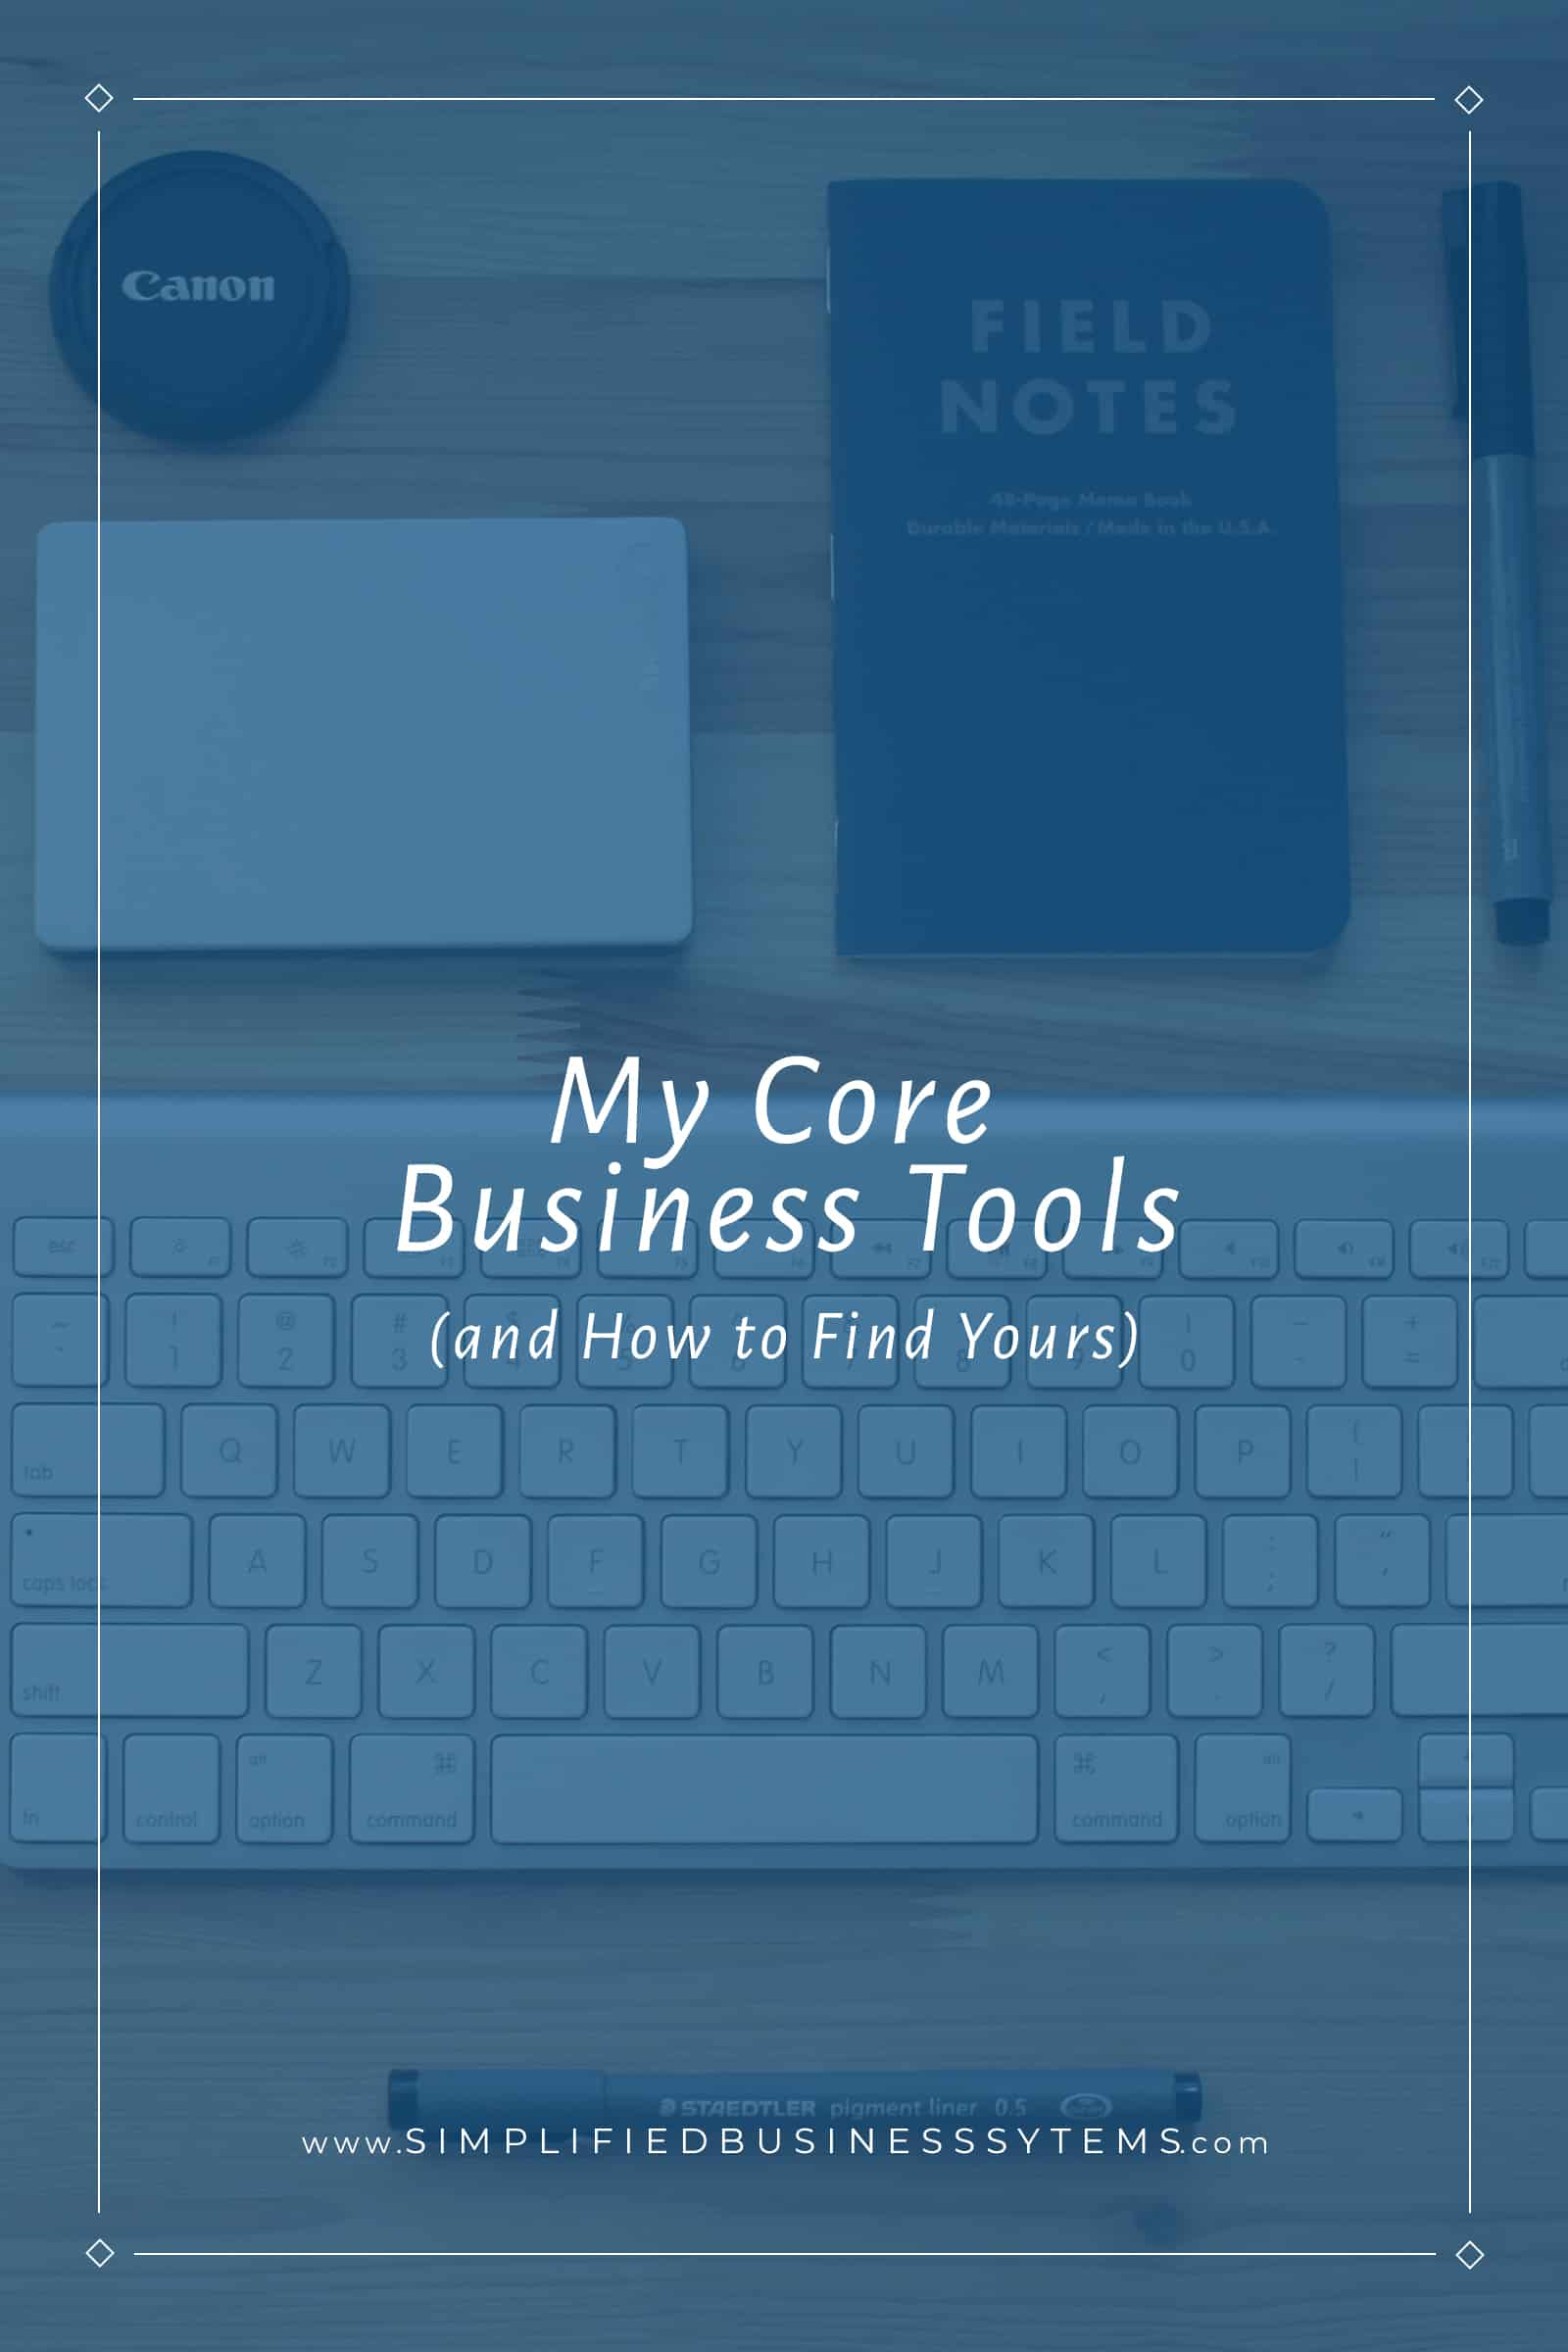 My Core Business Tools (and How to Find Yours)